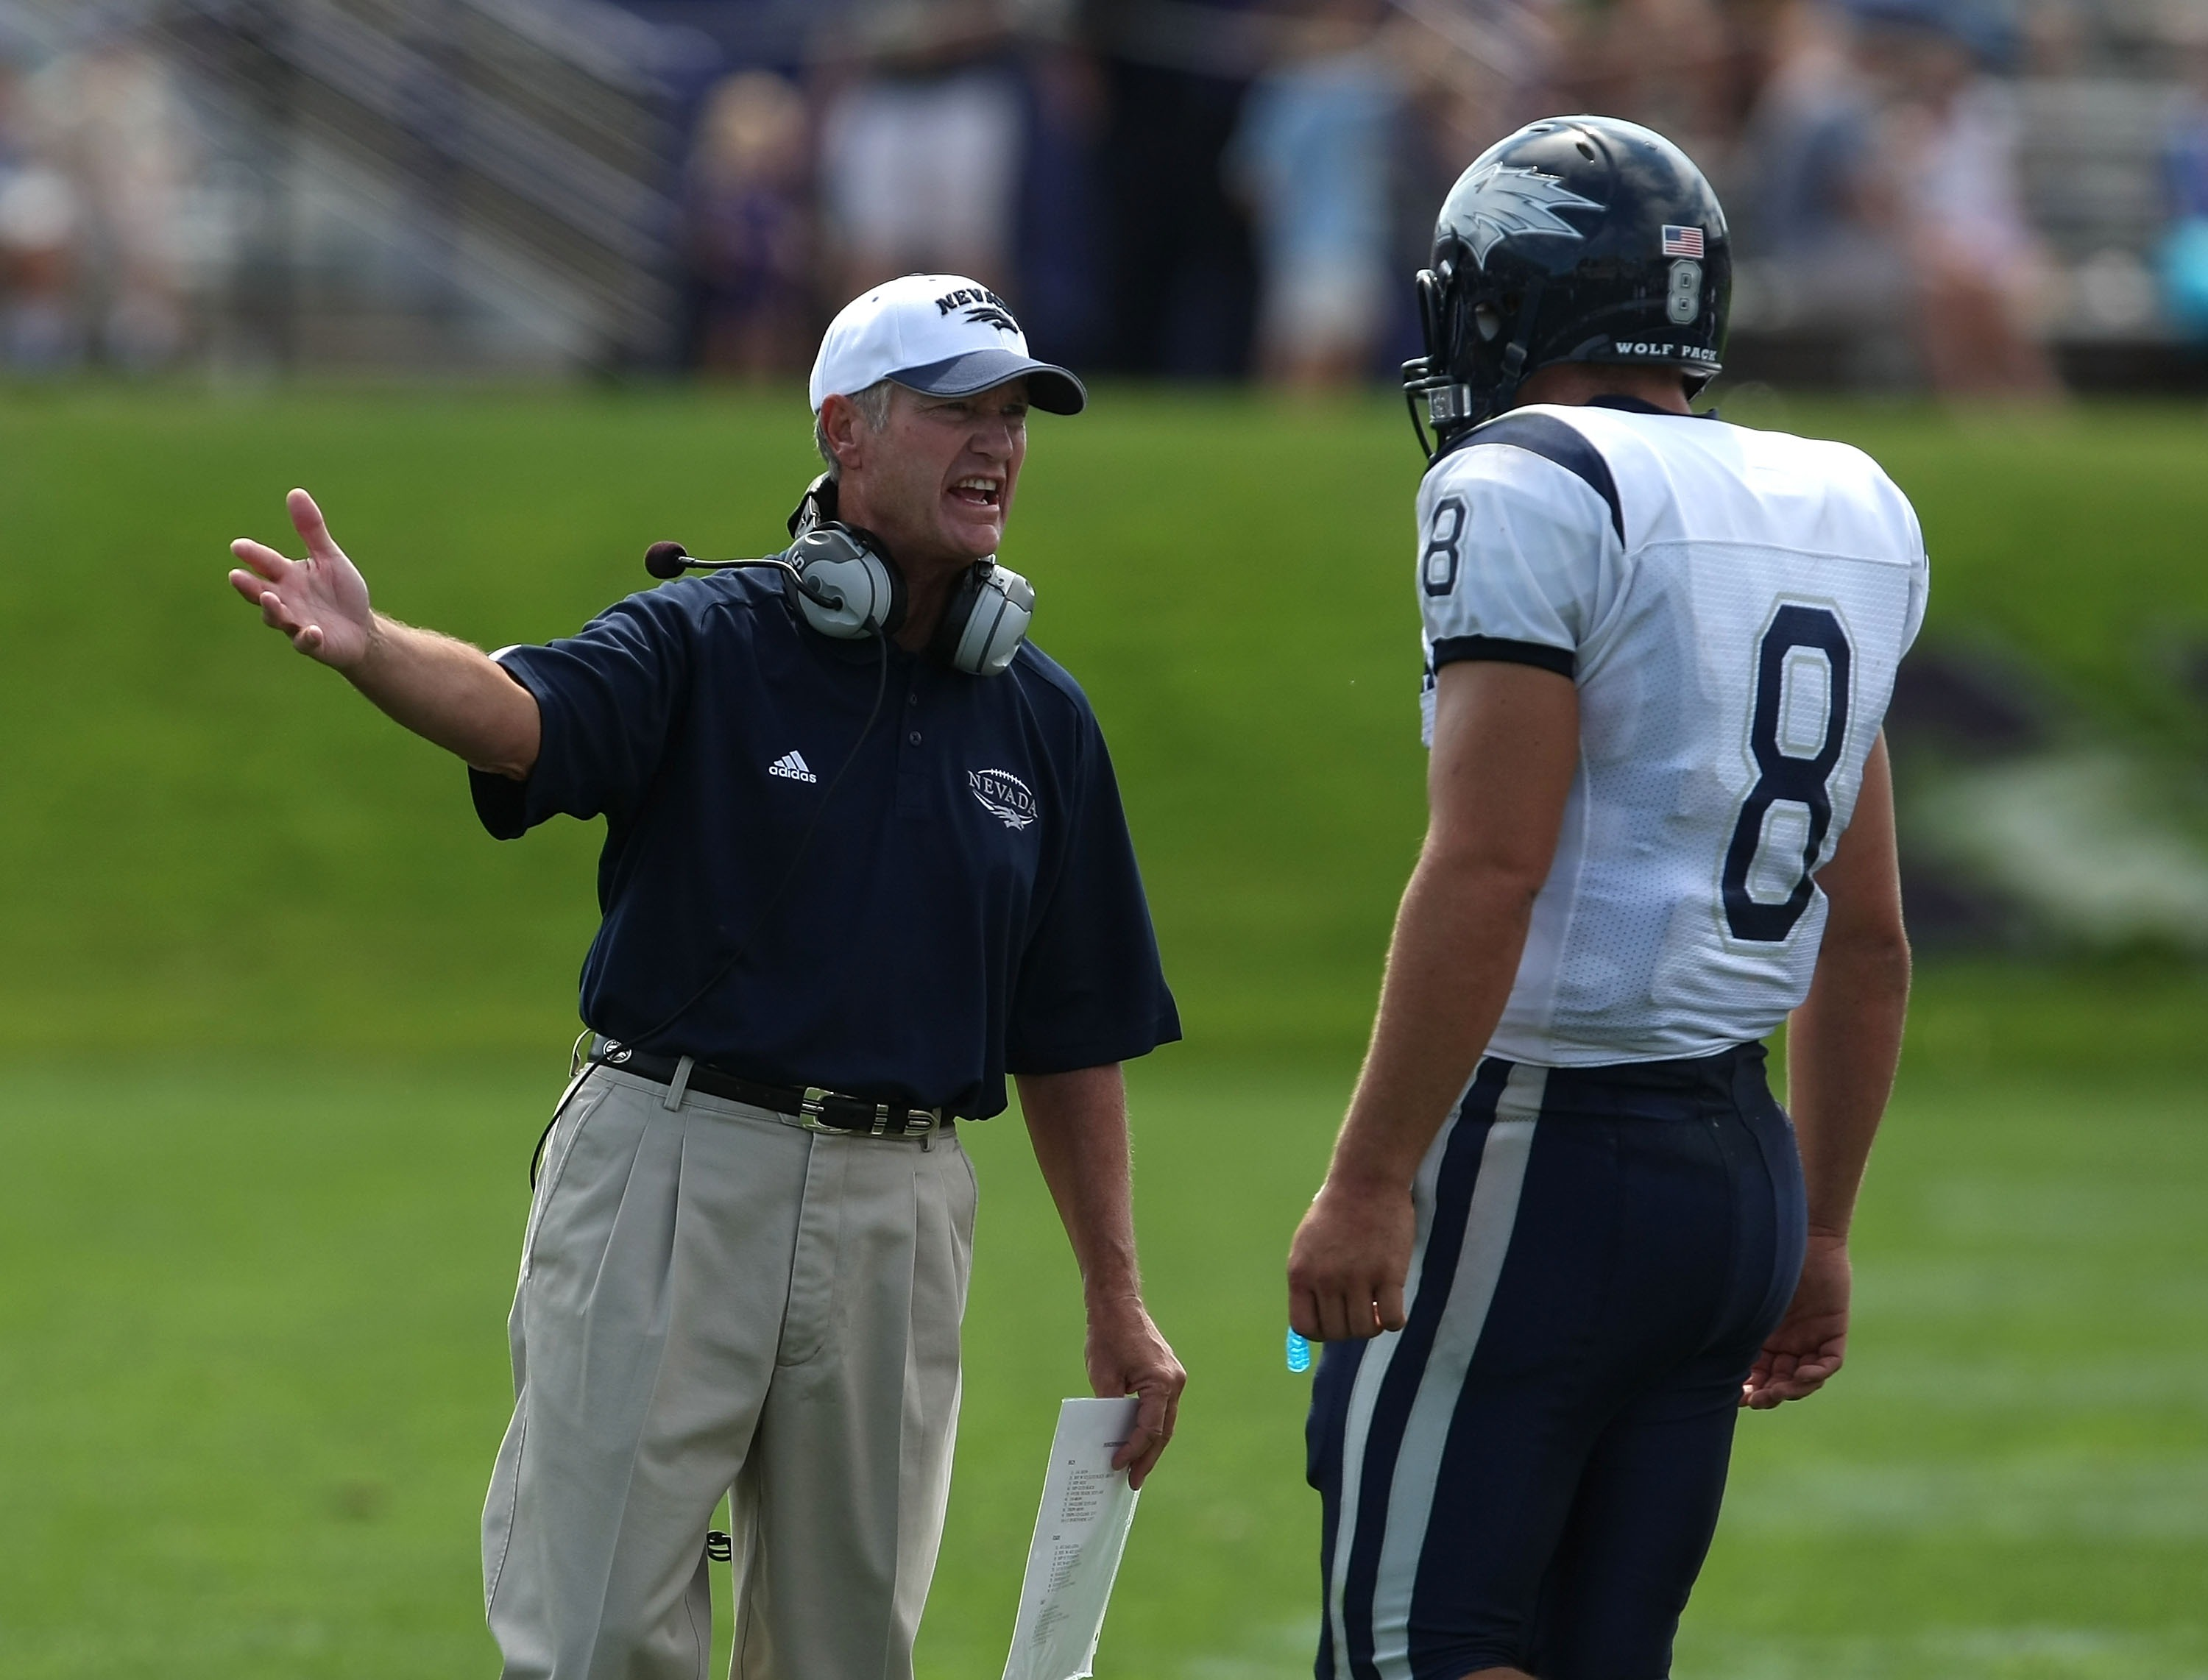 EVANSTON, IL - SEPTEMBER 08: Head coach Chris Ault of the Nevada Wolf Pack has words with quarterback Nick Graziano #8 during a game against the Northwestern Wildcats on September 8, 2007 at Ryan Field at Northwestern University in Evanston, Illinois. (Ph